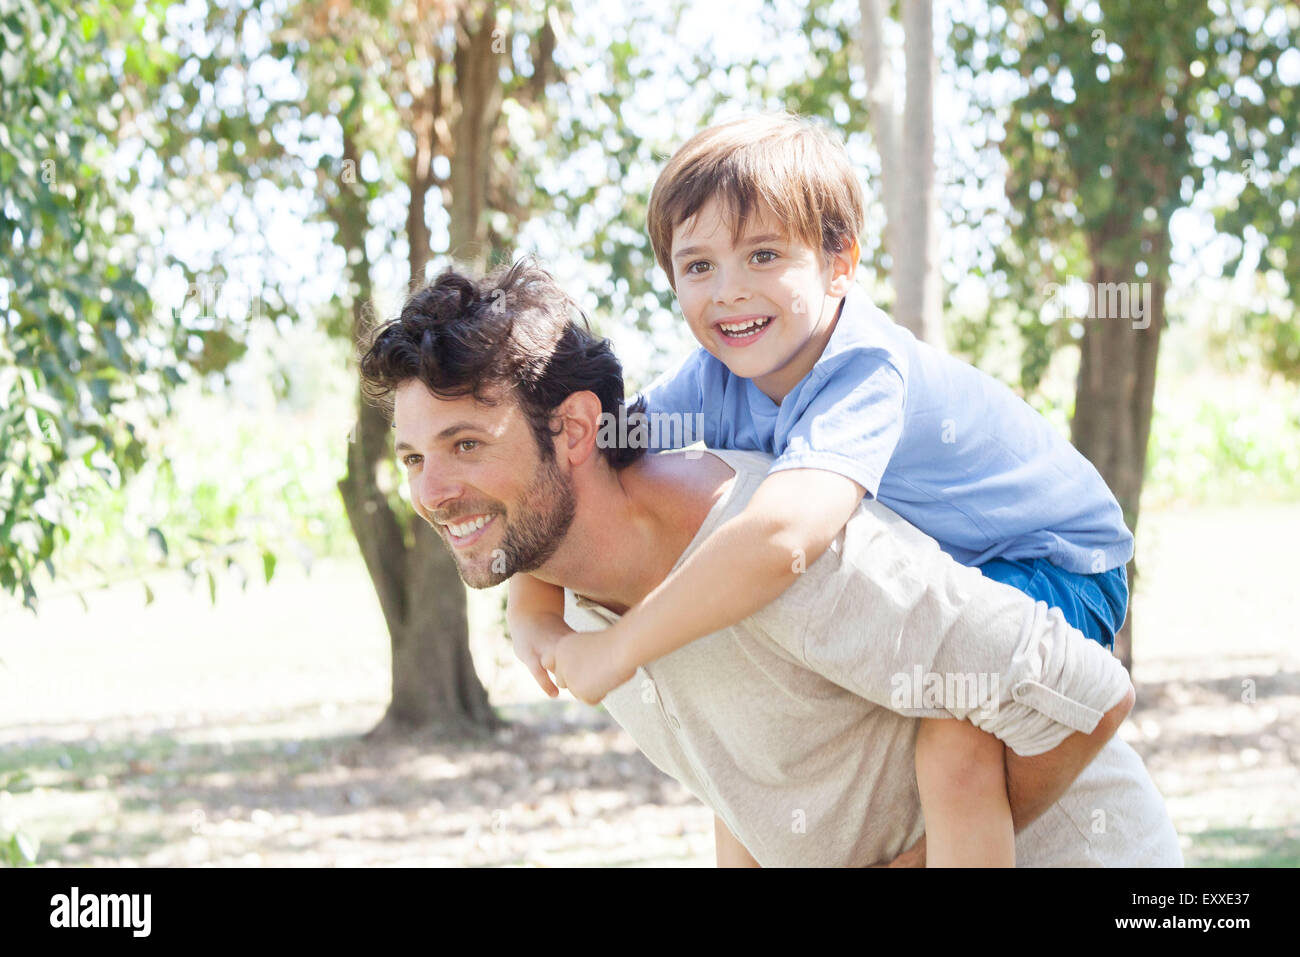 Father carrying young son piggyback - Stock Image